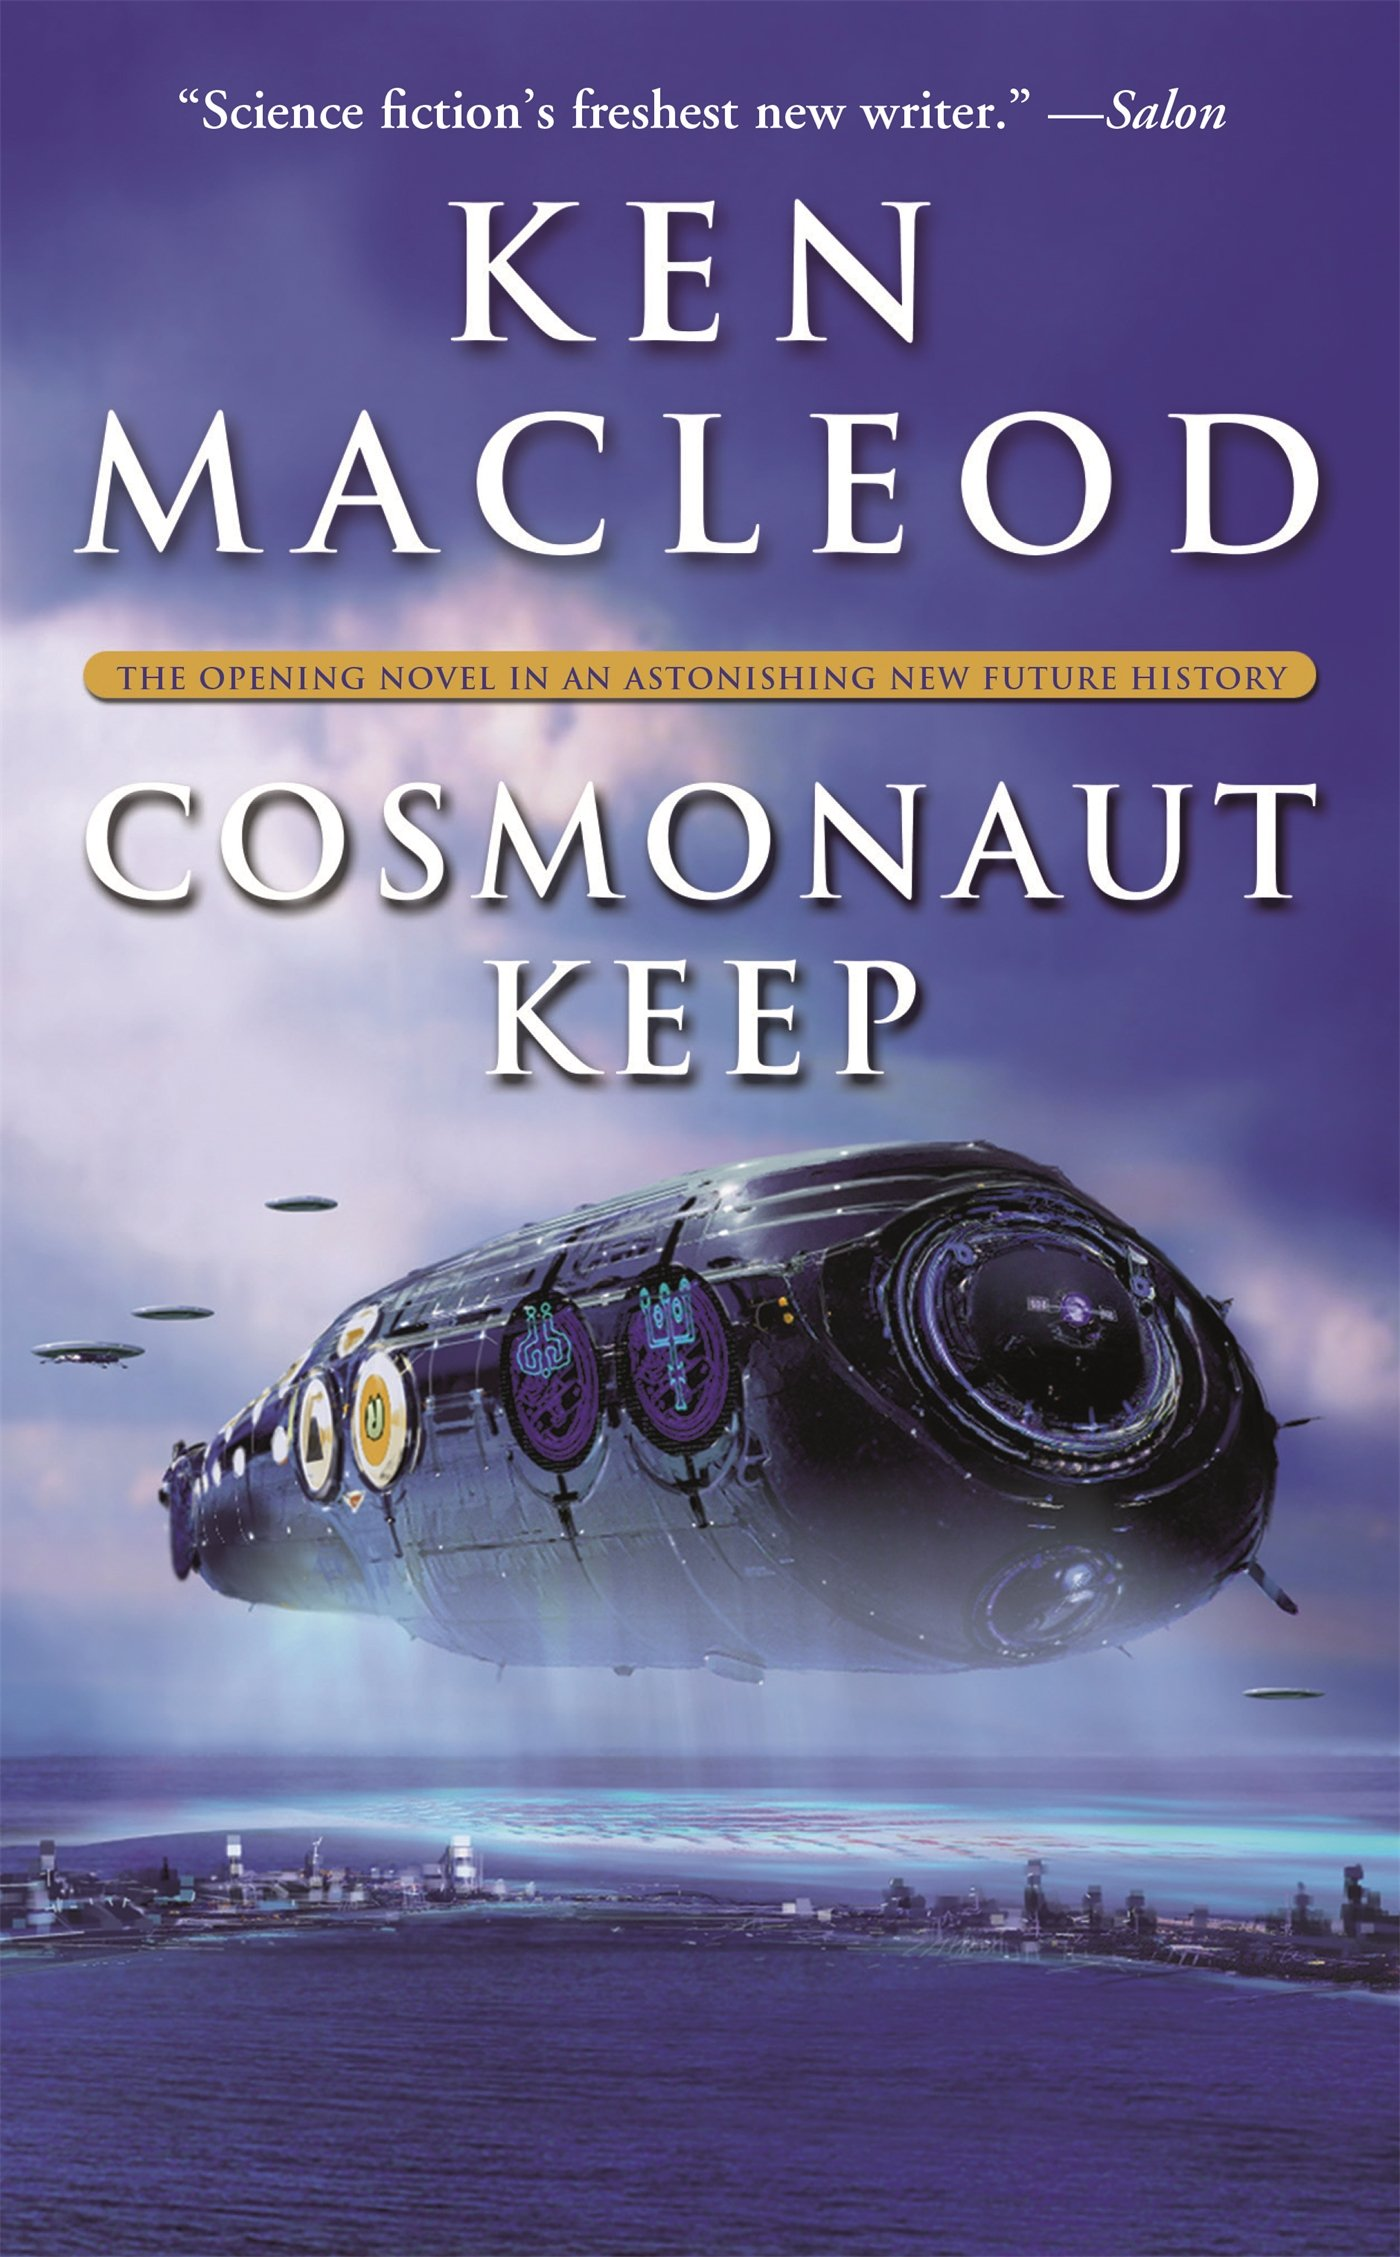 Cosmonaut Keep: The Opening Novel in an Astonishing New Future History (Engines of Light)